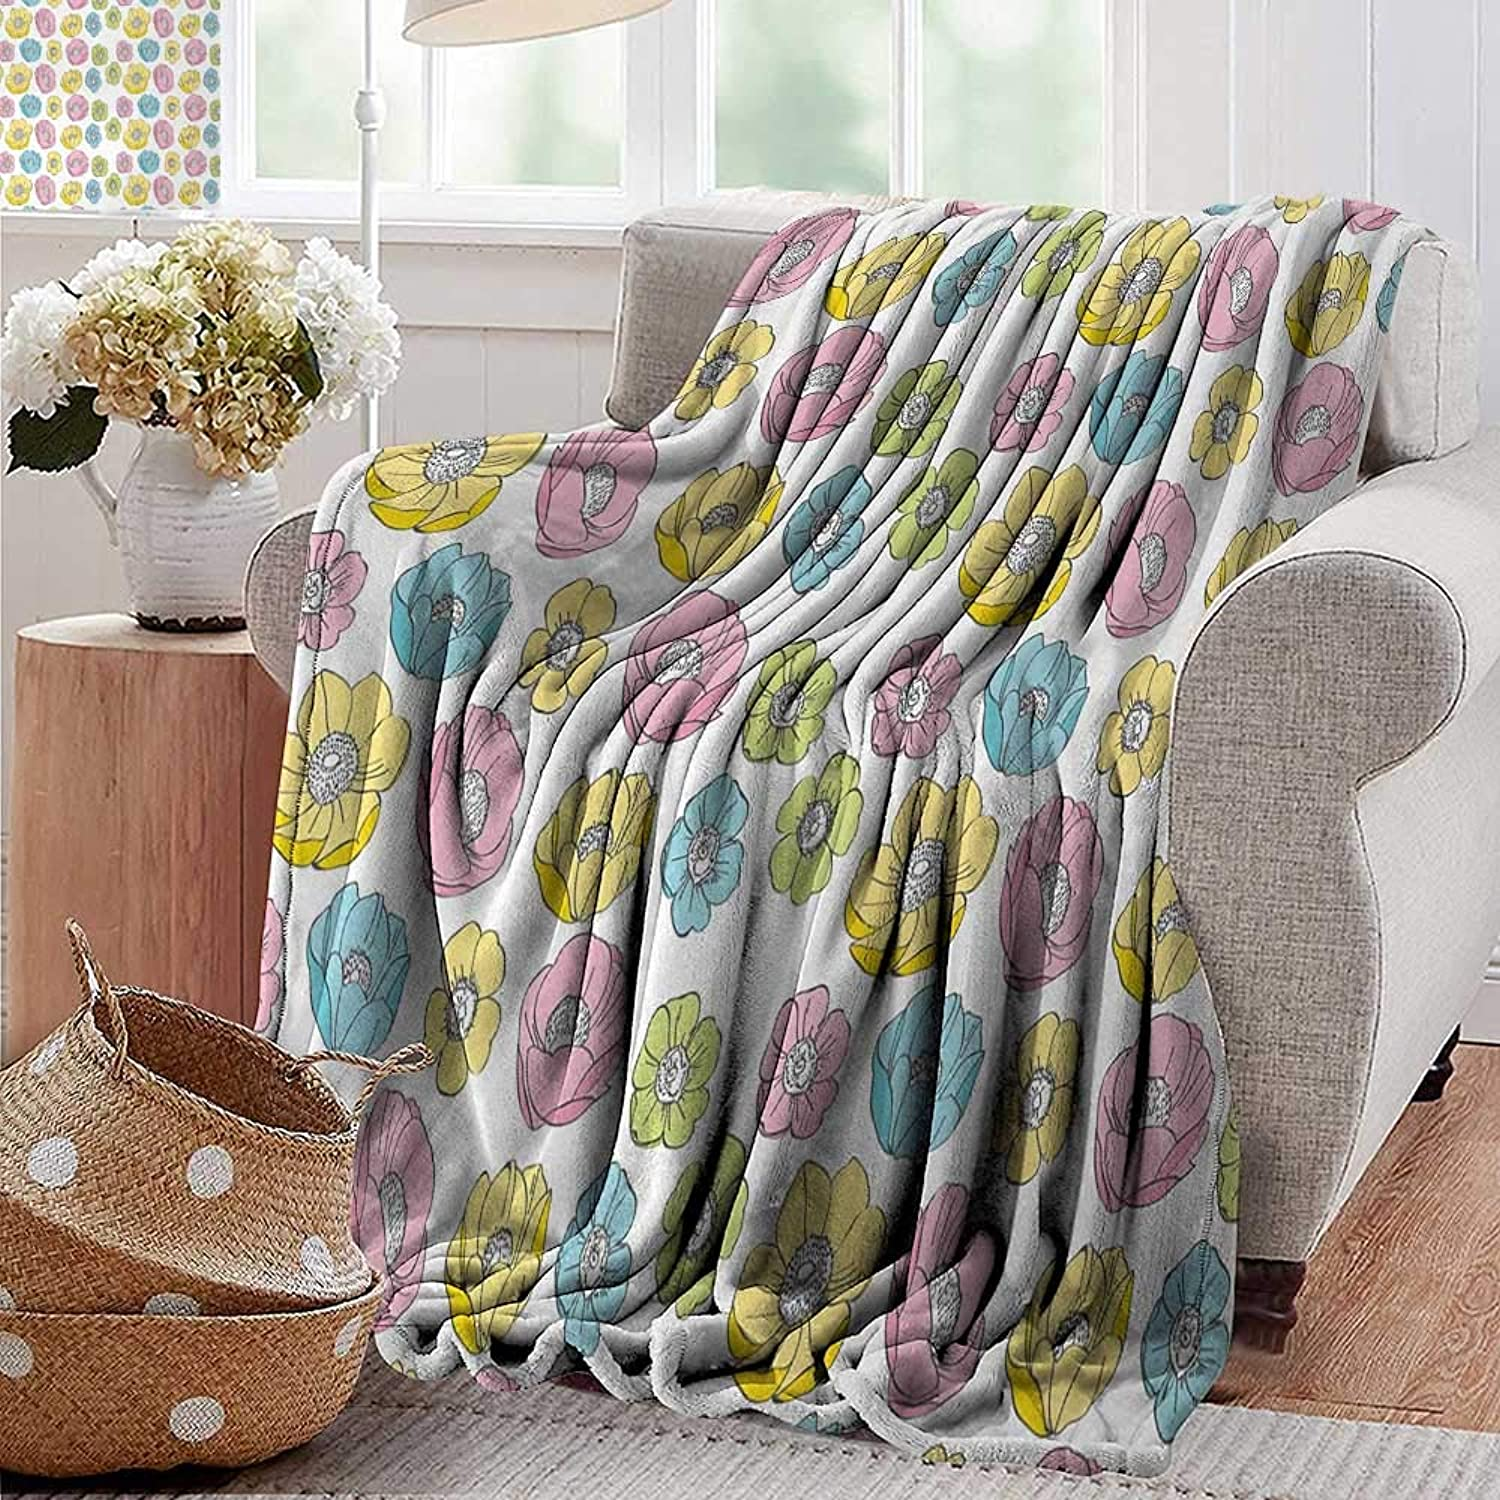 XavieraDoherty Weighted Blanket,Anemone Flower,colorful Seasonal Field Pattern Graphic Girls Kids Theme,Pale bluee Pale Pink Yellow,Indoor Outdoor, Comfortable for All Seasons 35 x60